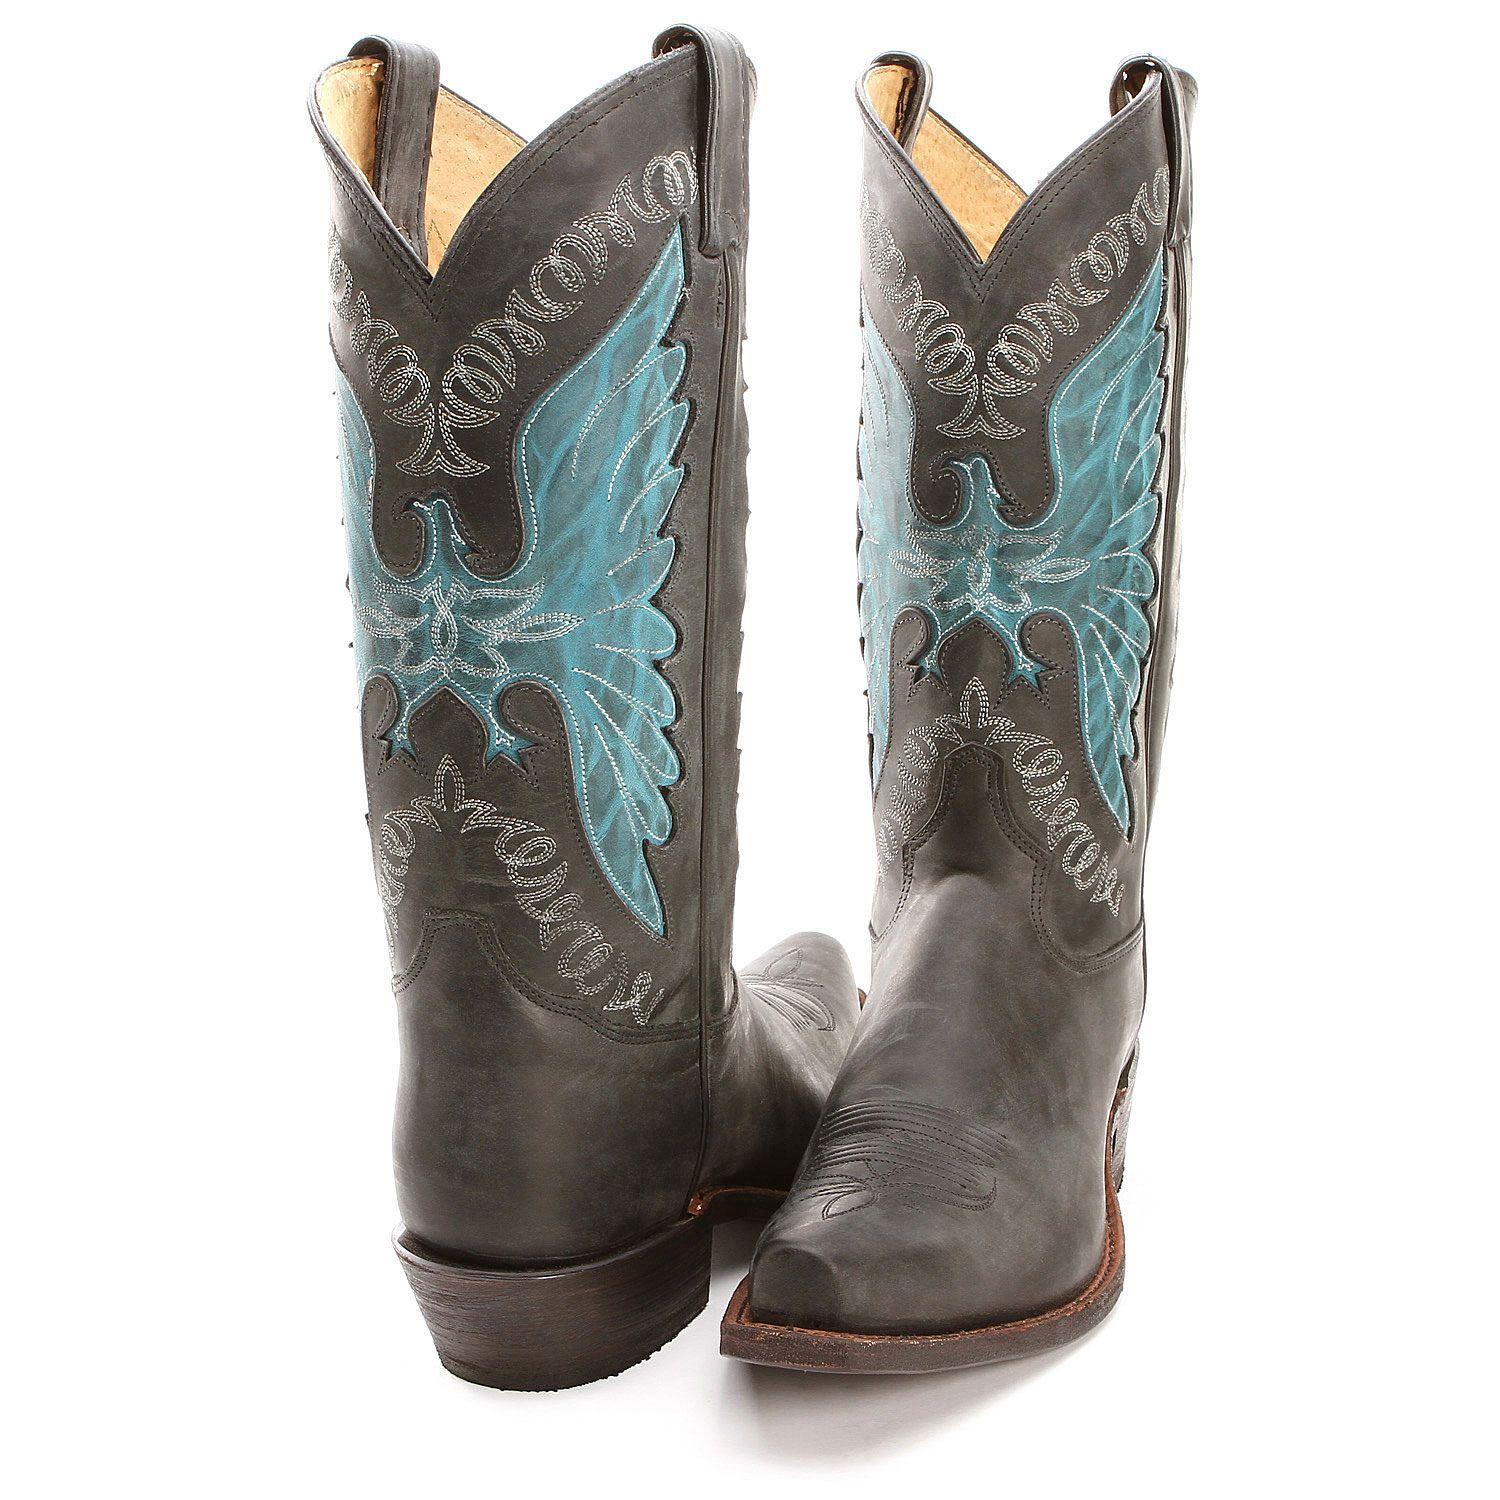 BootDaddy Collection with Tony Lama Black Phoenix Cowboy Boots